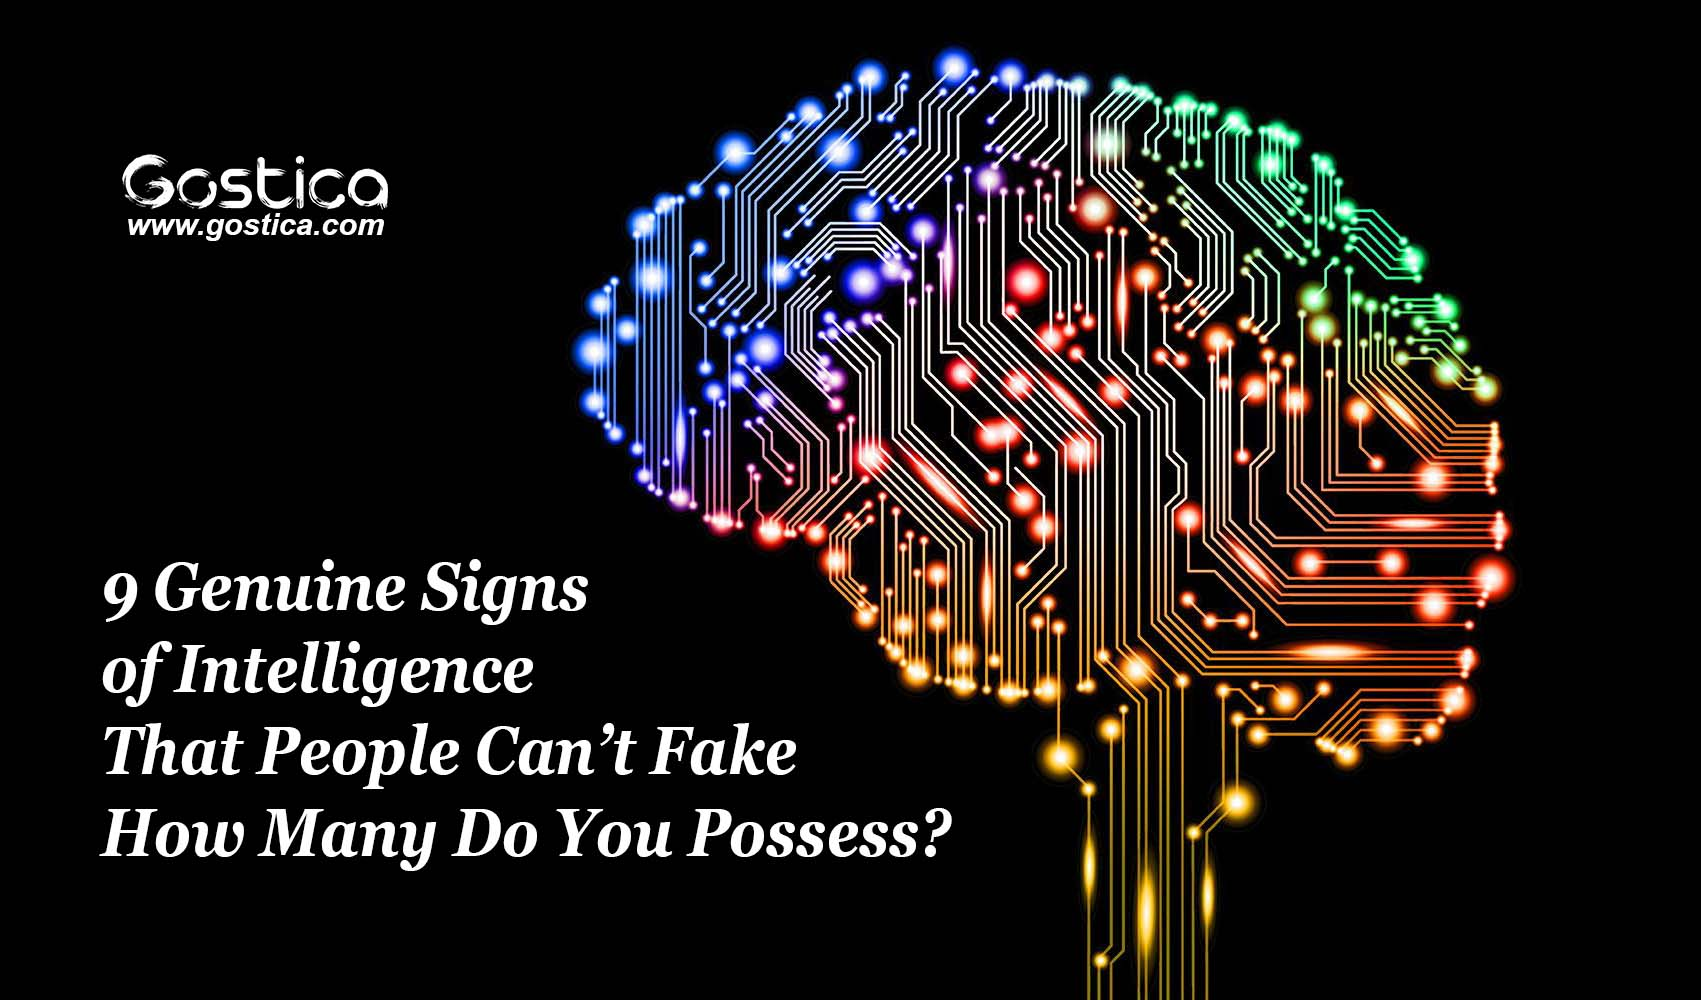 9-Genuine-Signs-of-Intelligence-That-People-Can't-Fake-–-How-Many-Do-You-Possess.jpg